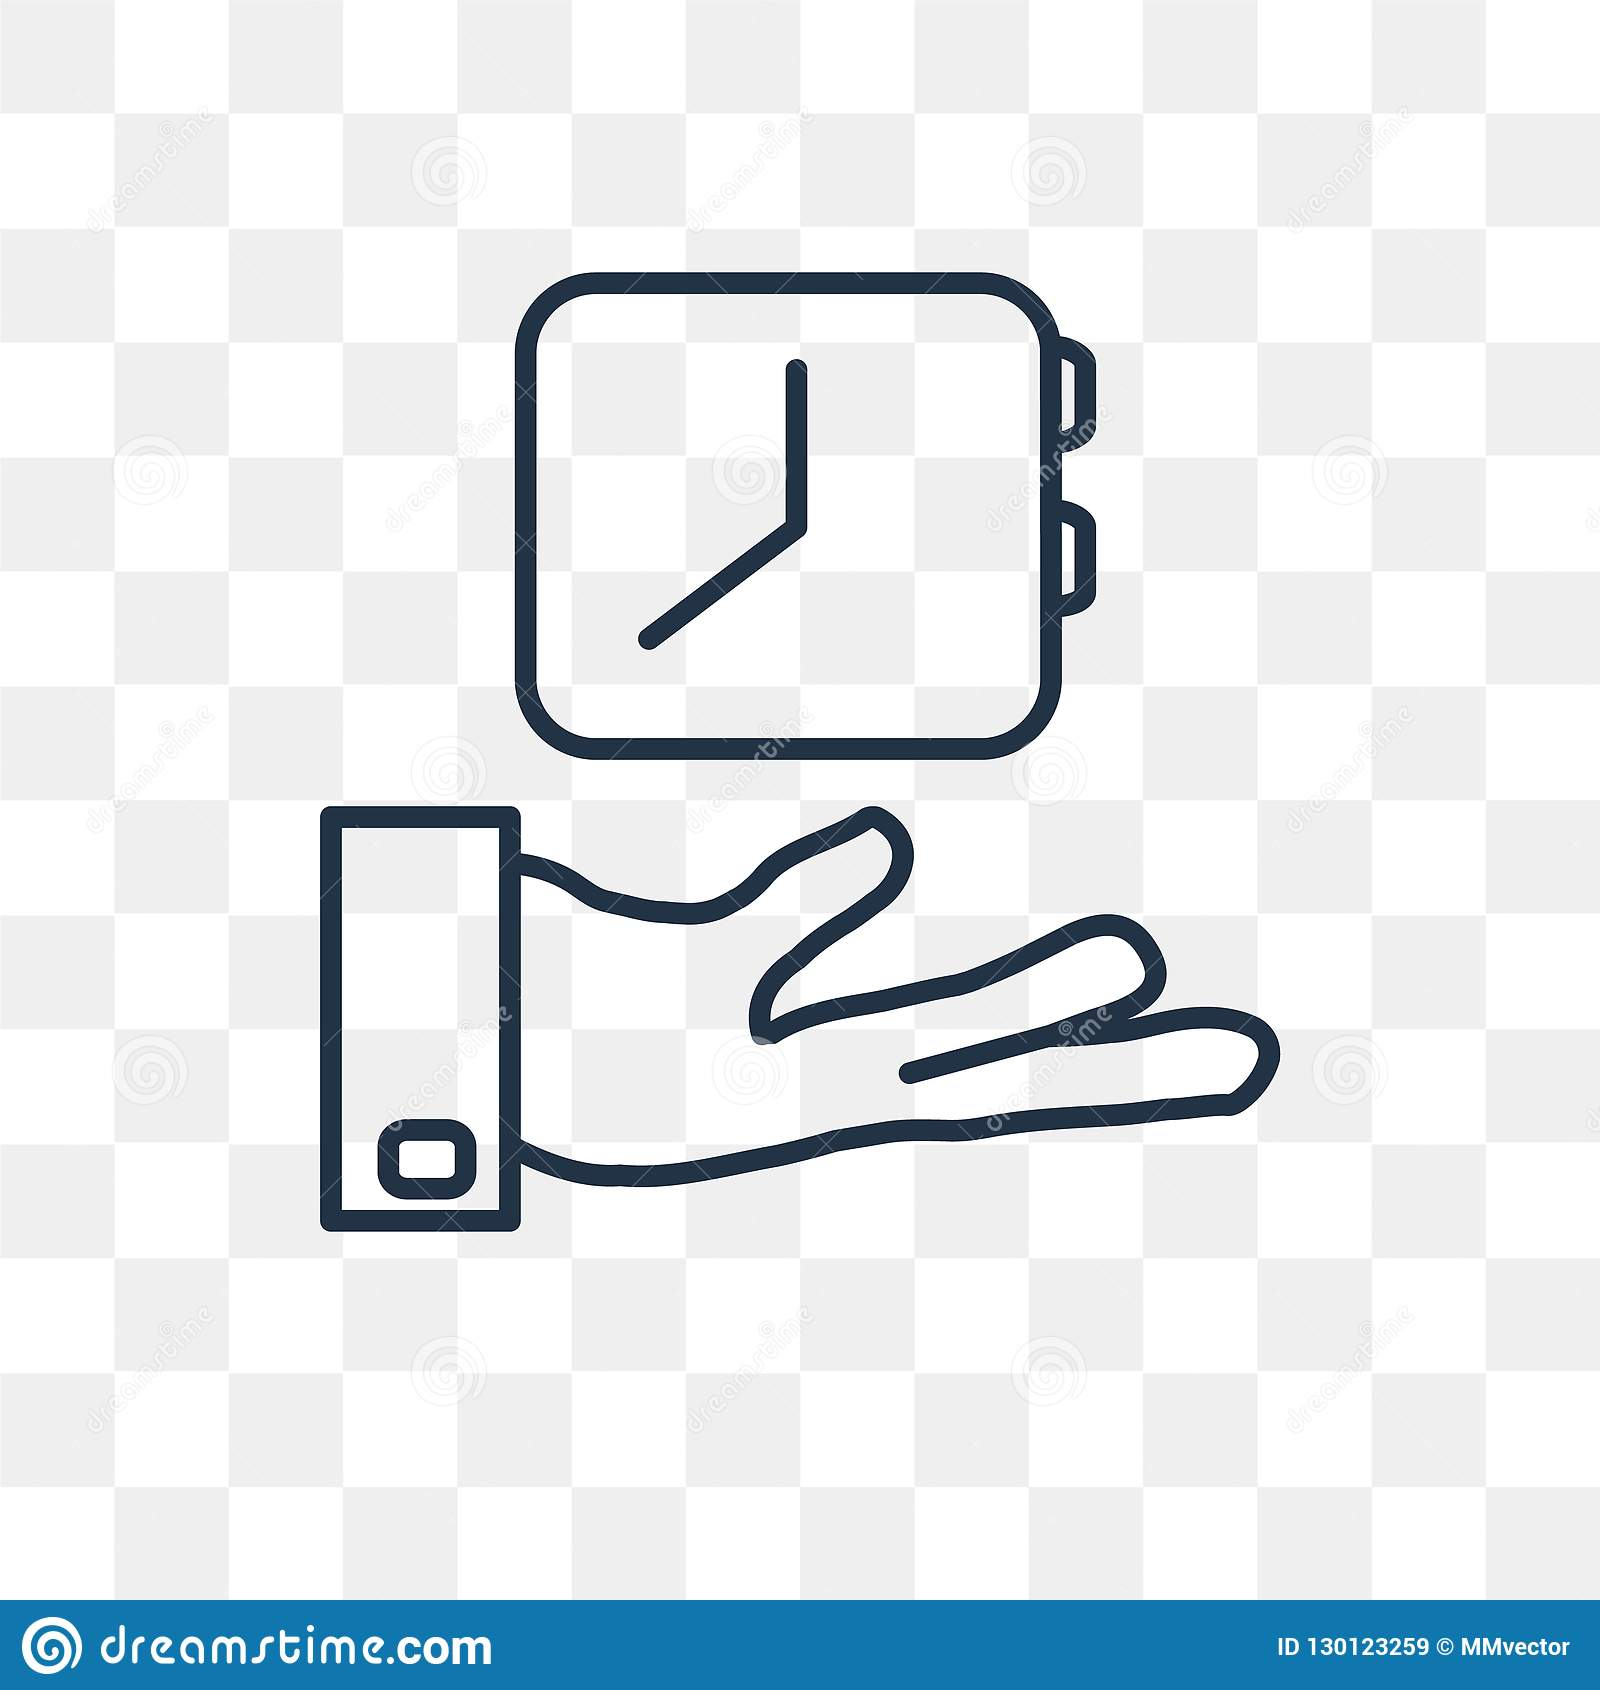 Save time vector icon isolated on transparent background, linear